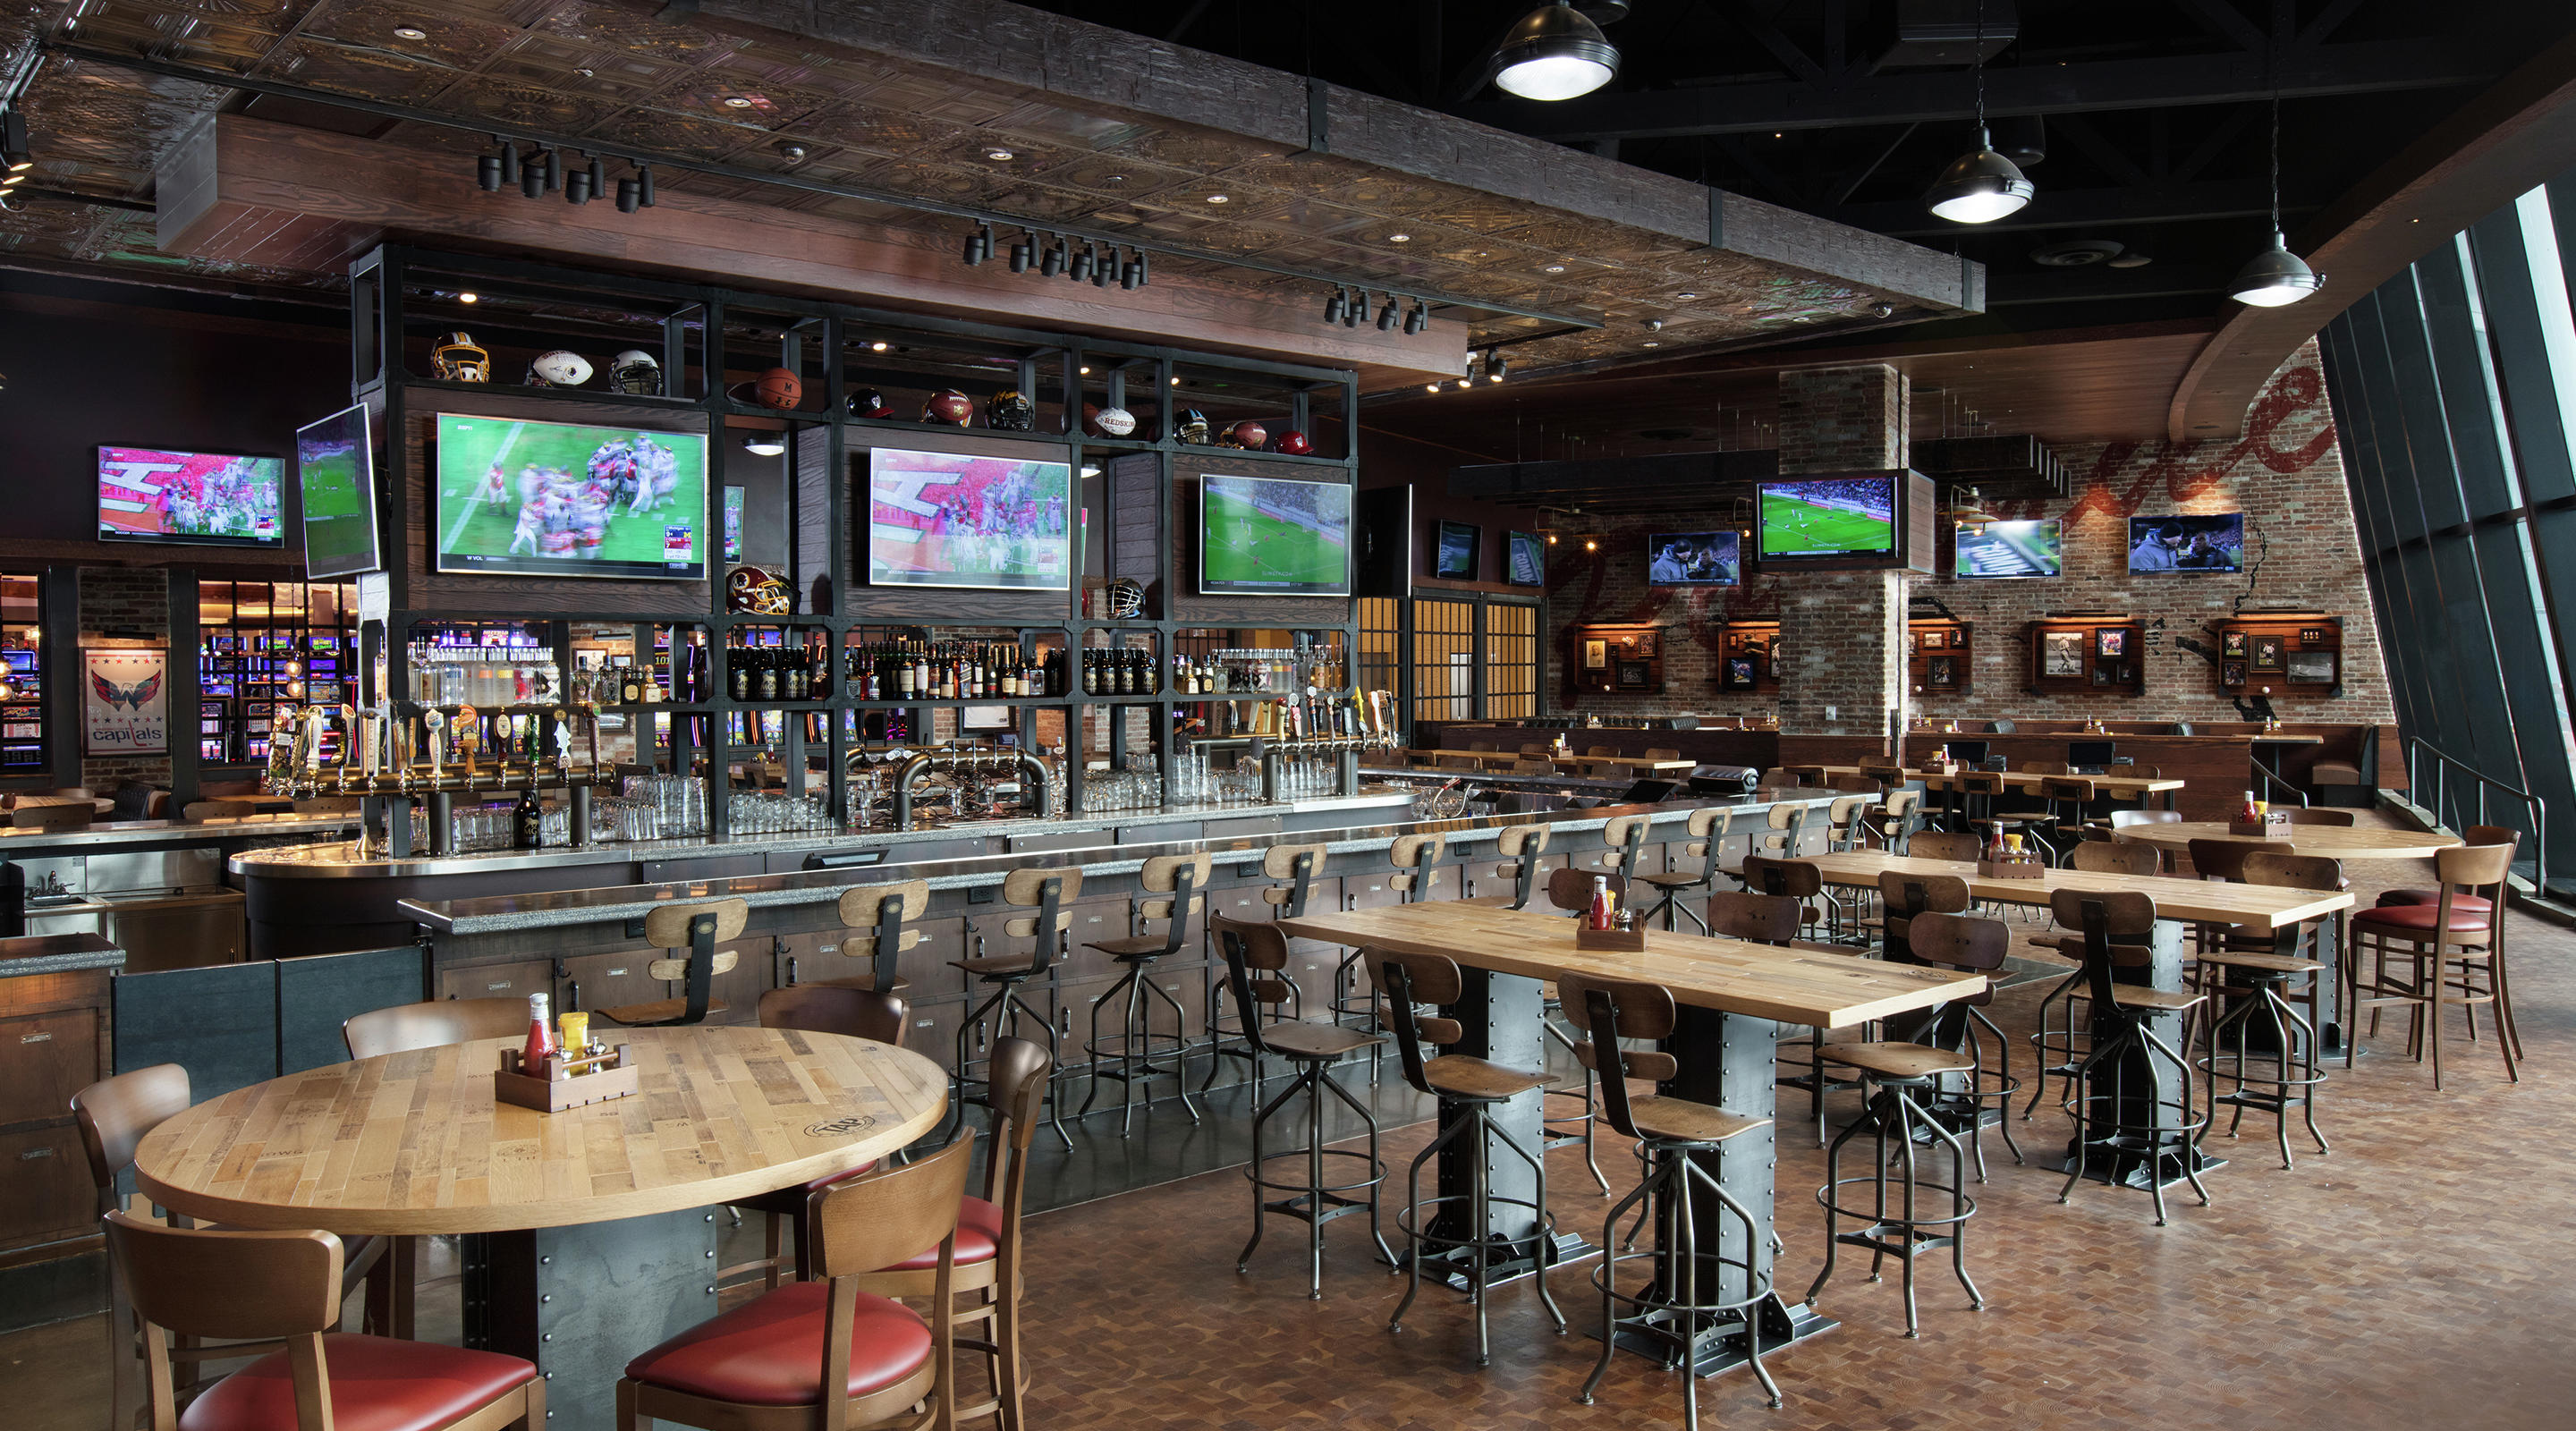 TAP is the perfect place to root for your favorite teams.